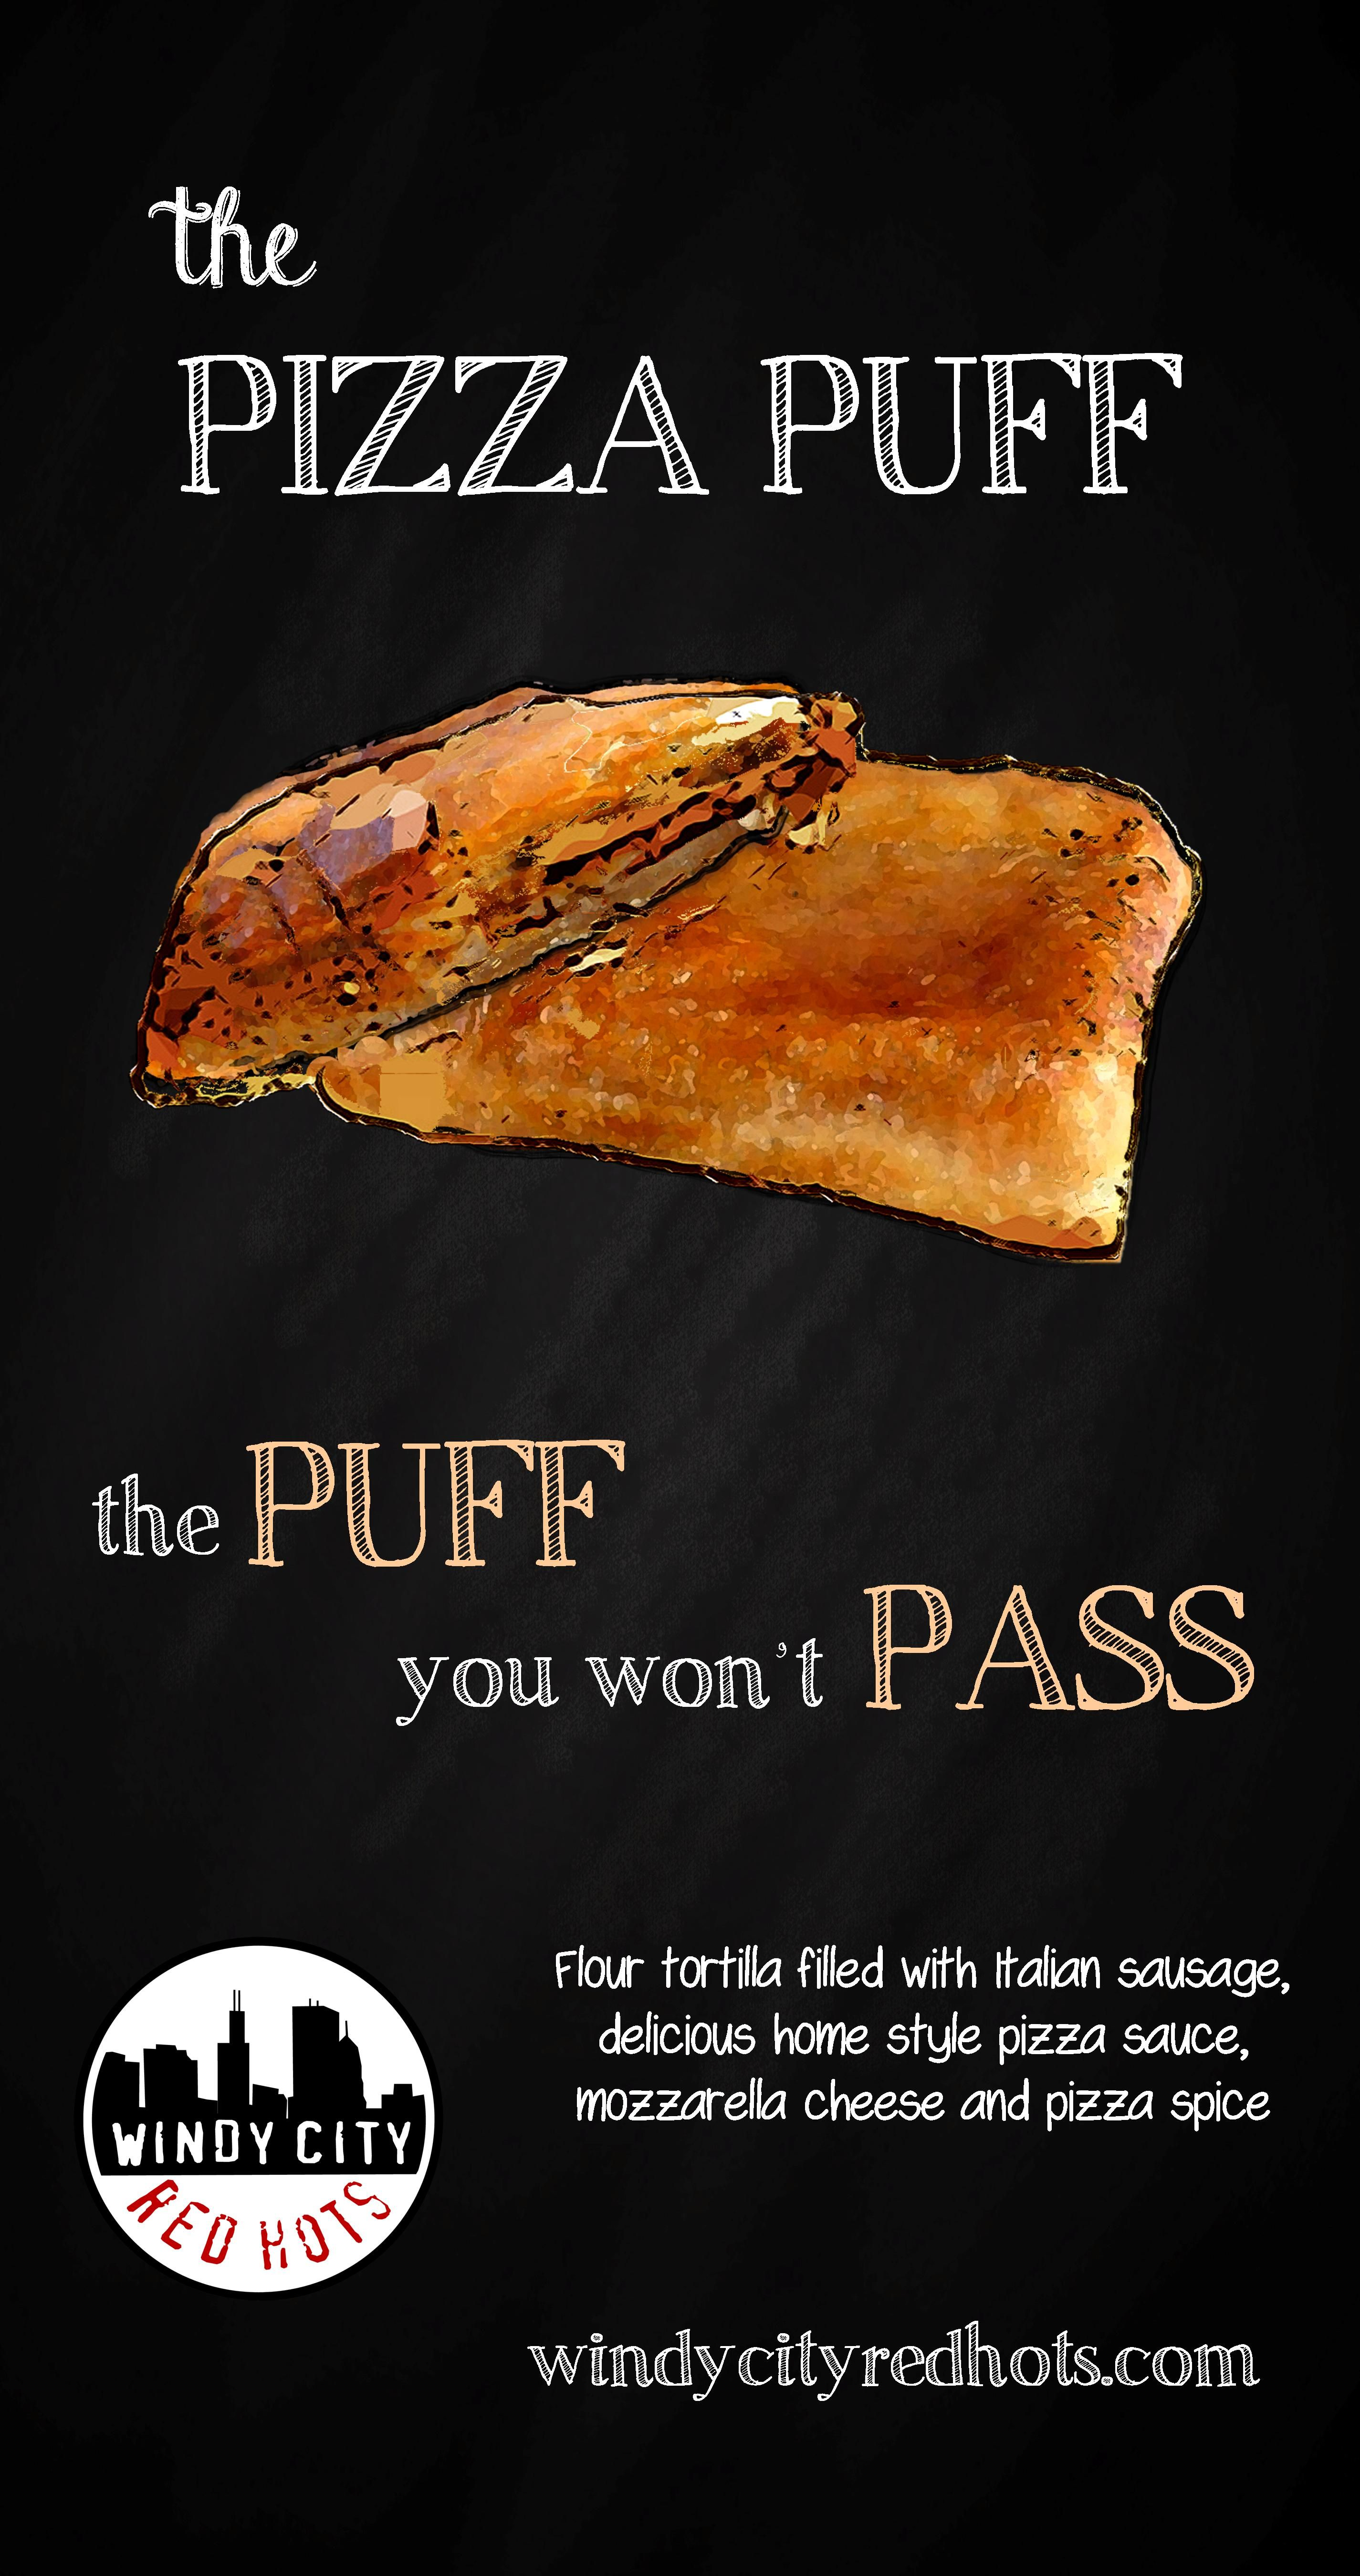 Pizza Puff The Puff You Wont Pass Part Of A Series Of Large Print Project For The Windy City Red Hots Food Truck Food Illustra Hot Meals Pizza Spices Food